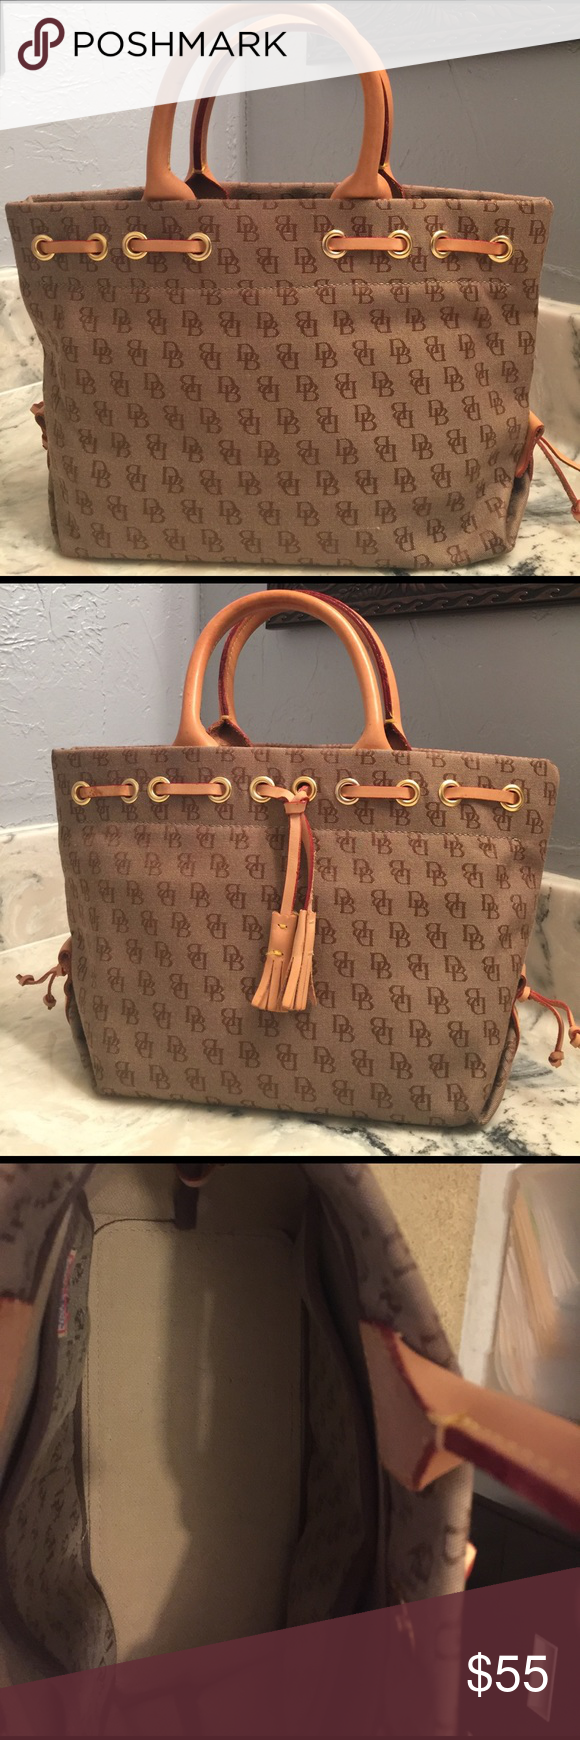 Small Dooney & Bourke tote $55 12 x 8. I've only had it since Christmas.  It's super cute but a little to small for me.  Still in great condition.  Very small scuff mark on one handle and a small water mark on the other - as shown in the pictures.  Inside of bag is very clean but hard to get picture without shadowing.  No pen marks.  Comes with a shoulder strap that has never been used. Dooney & Bourke Bags Totes